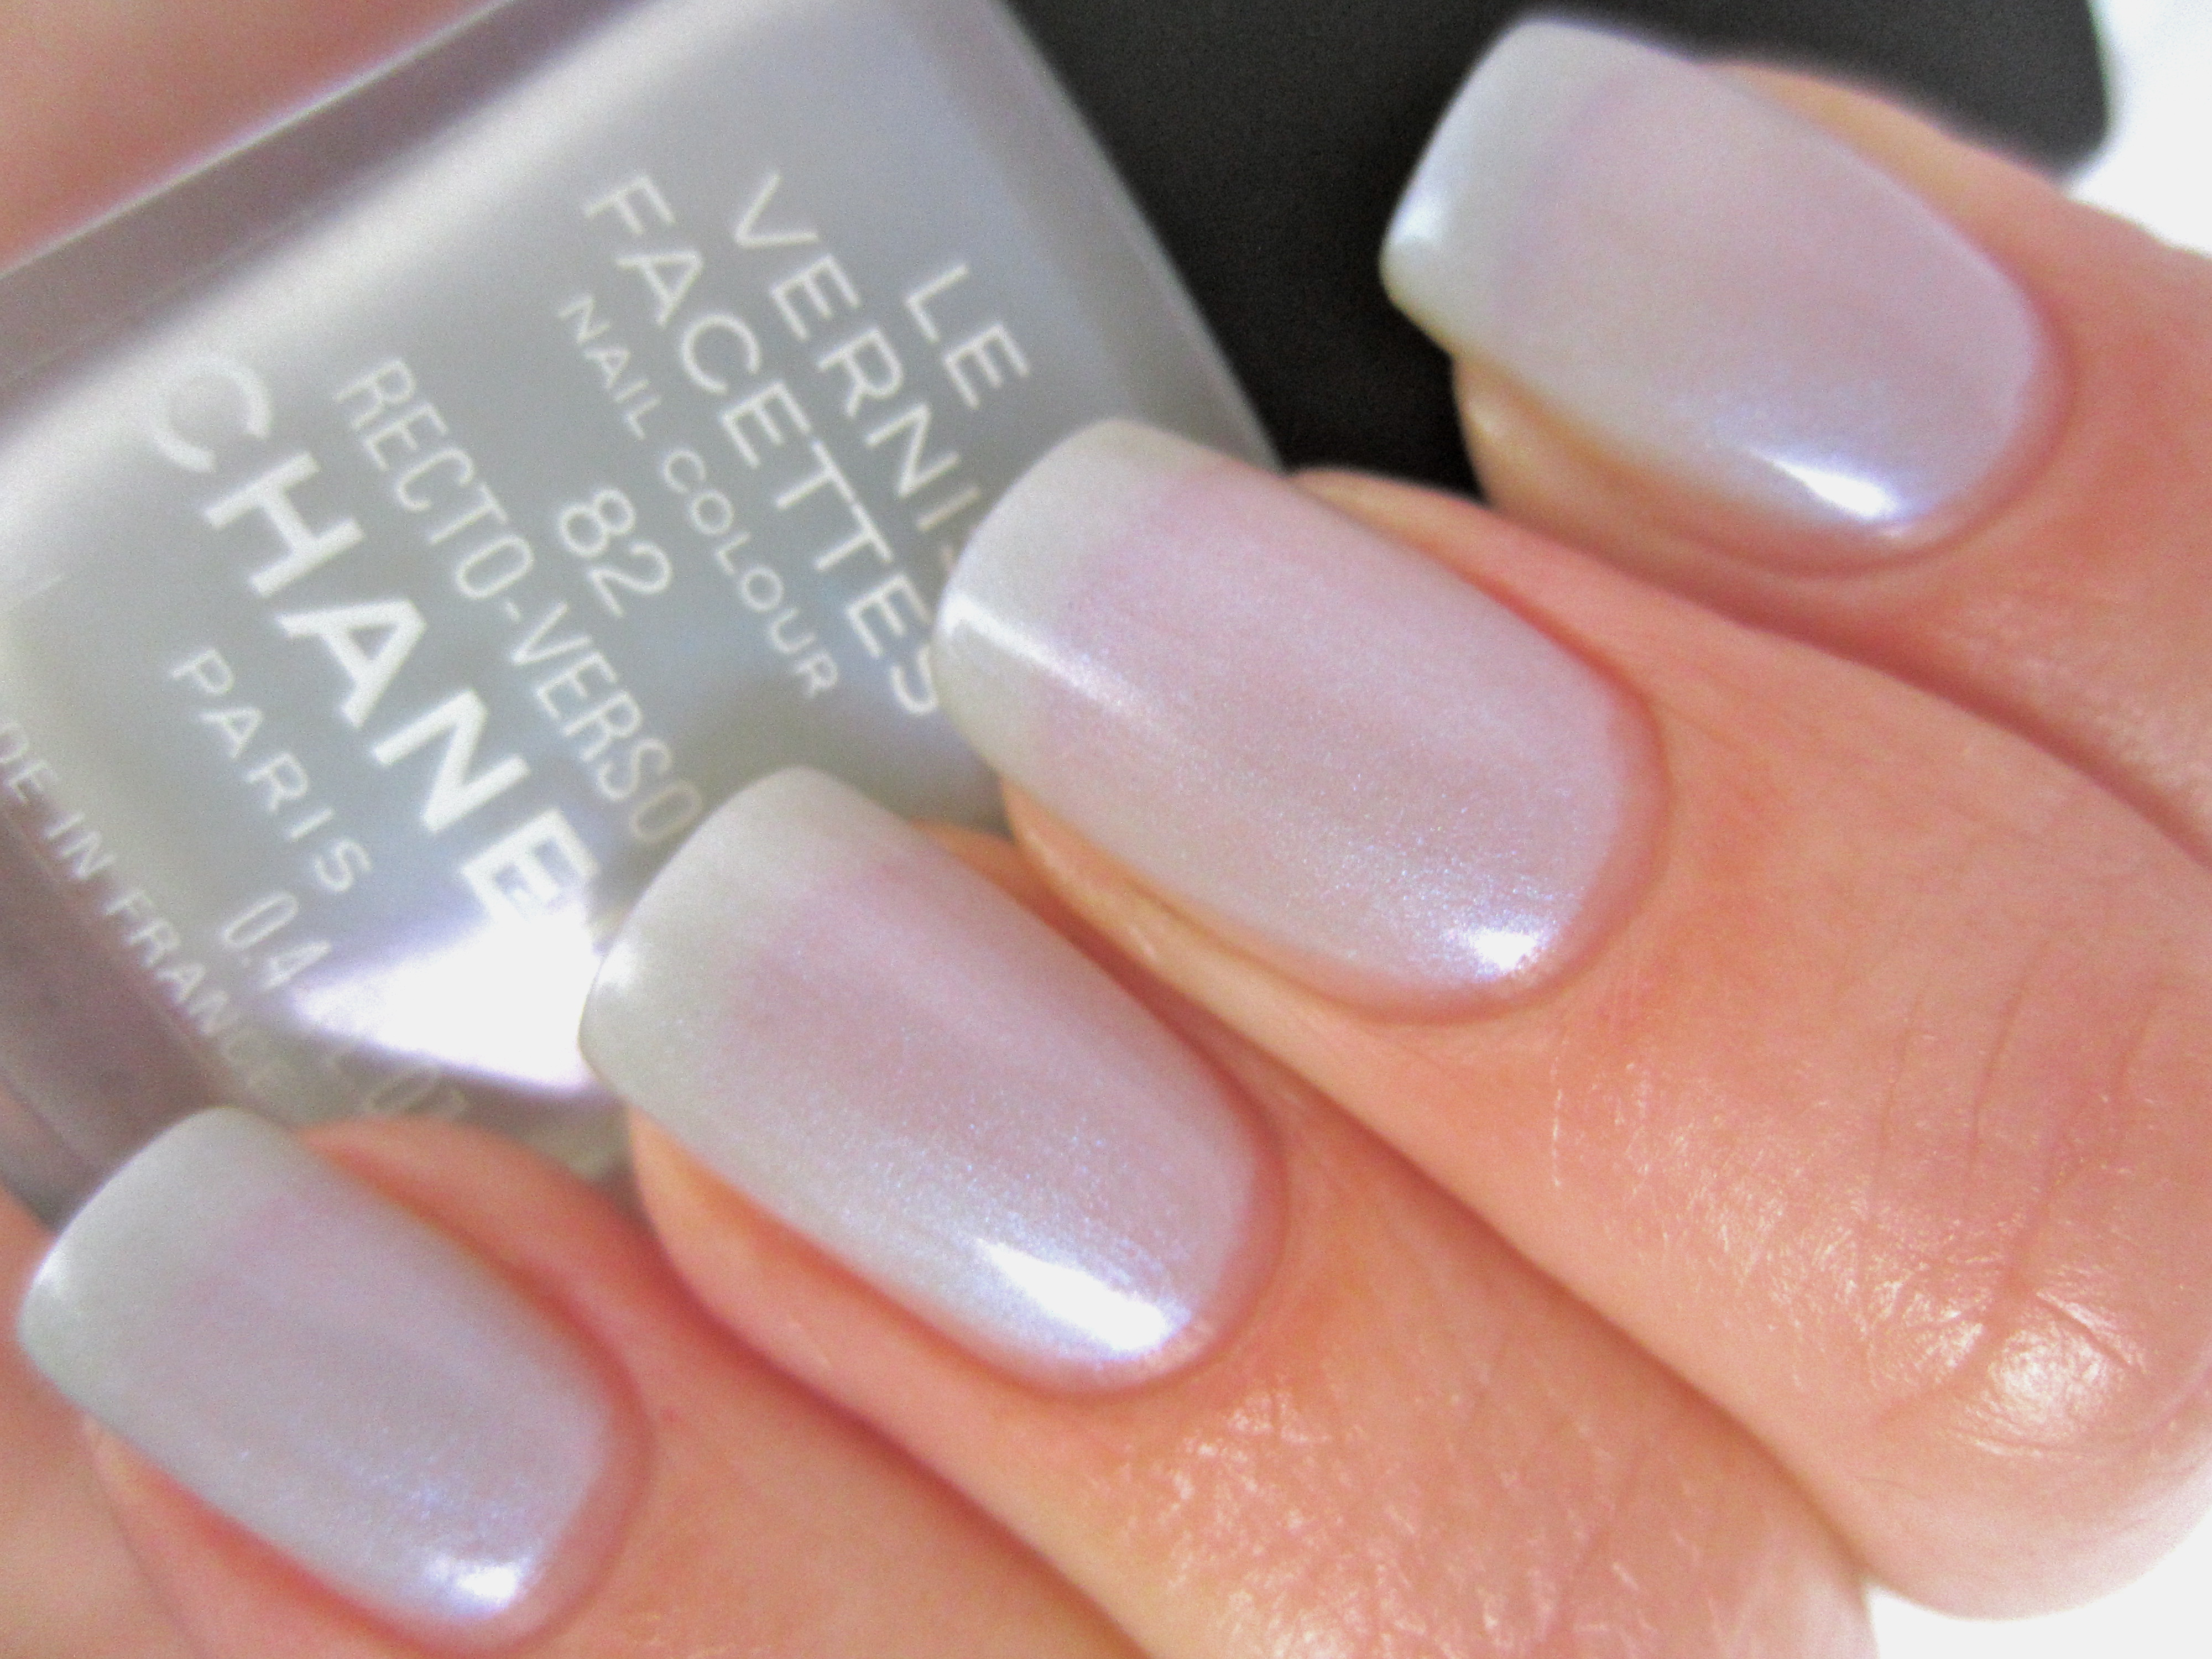 Vintage CHANEL: Le Vernis Facettes #82 Recto-Verso and #83 Clair ...